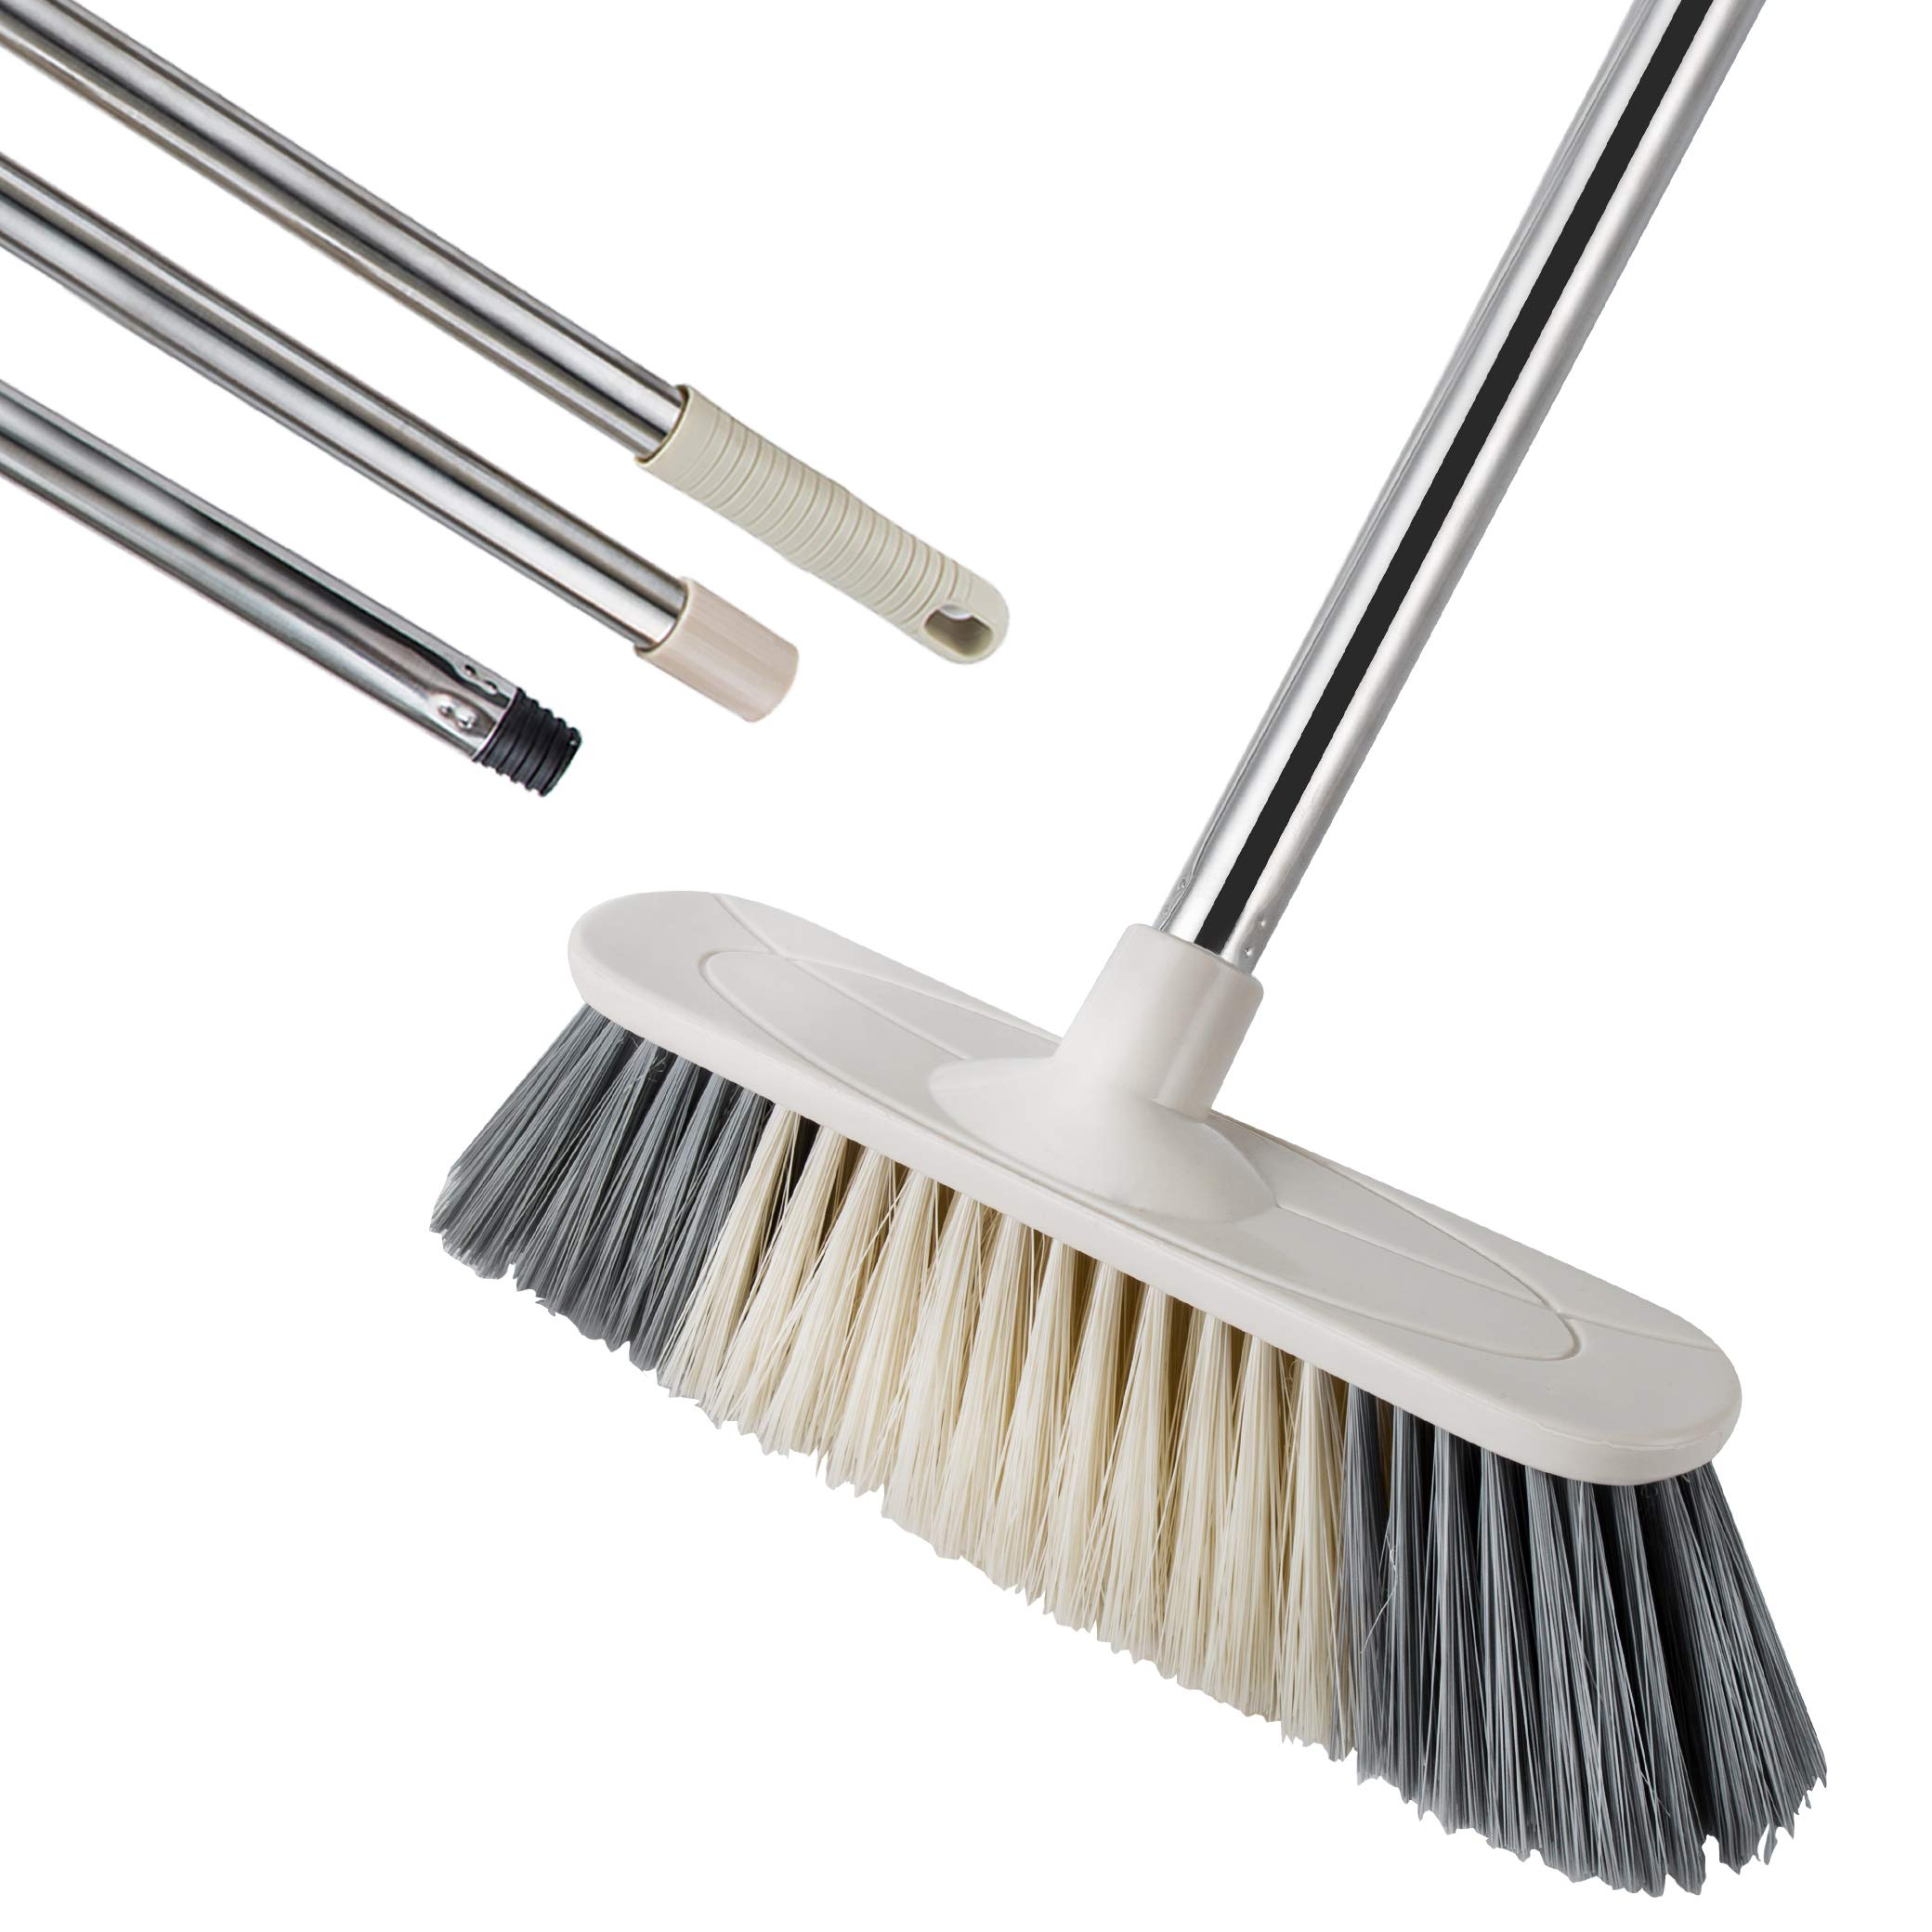 Soft Sweeping Broom, MEIBEI Multi-Surface Kitchen Broom with Stainless Steel Long Handle-50.5'', Soft Dusting Brush Ideal for Cleaning Home, Garage, Store and Office by MEIBEI